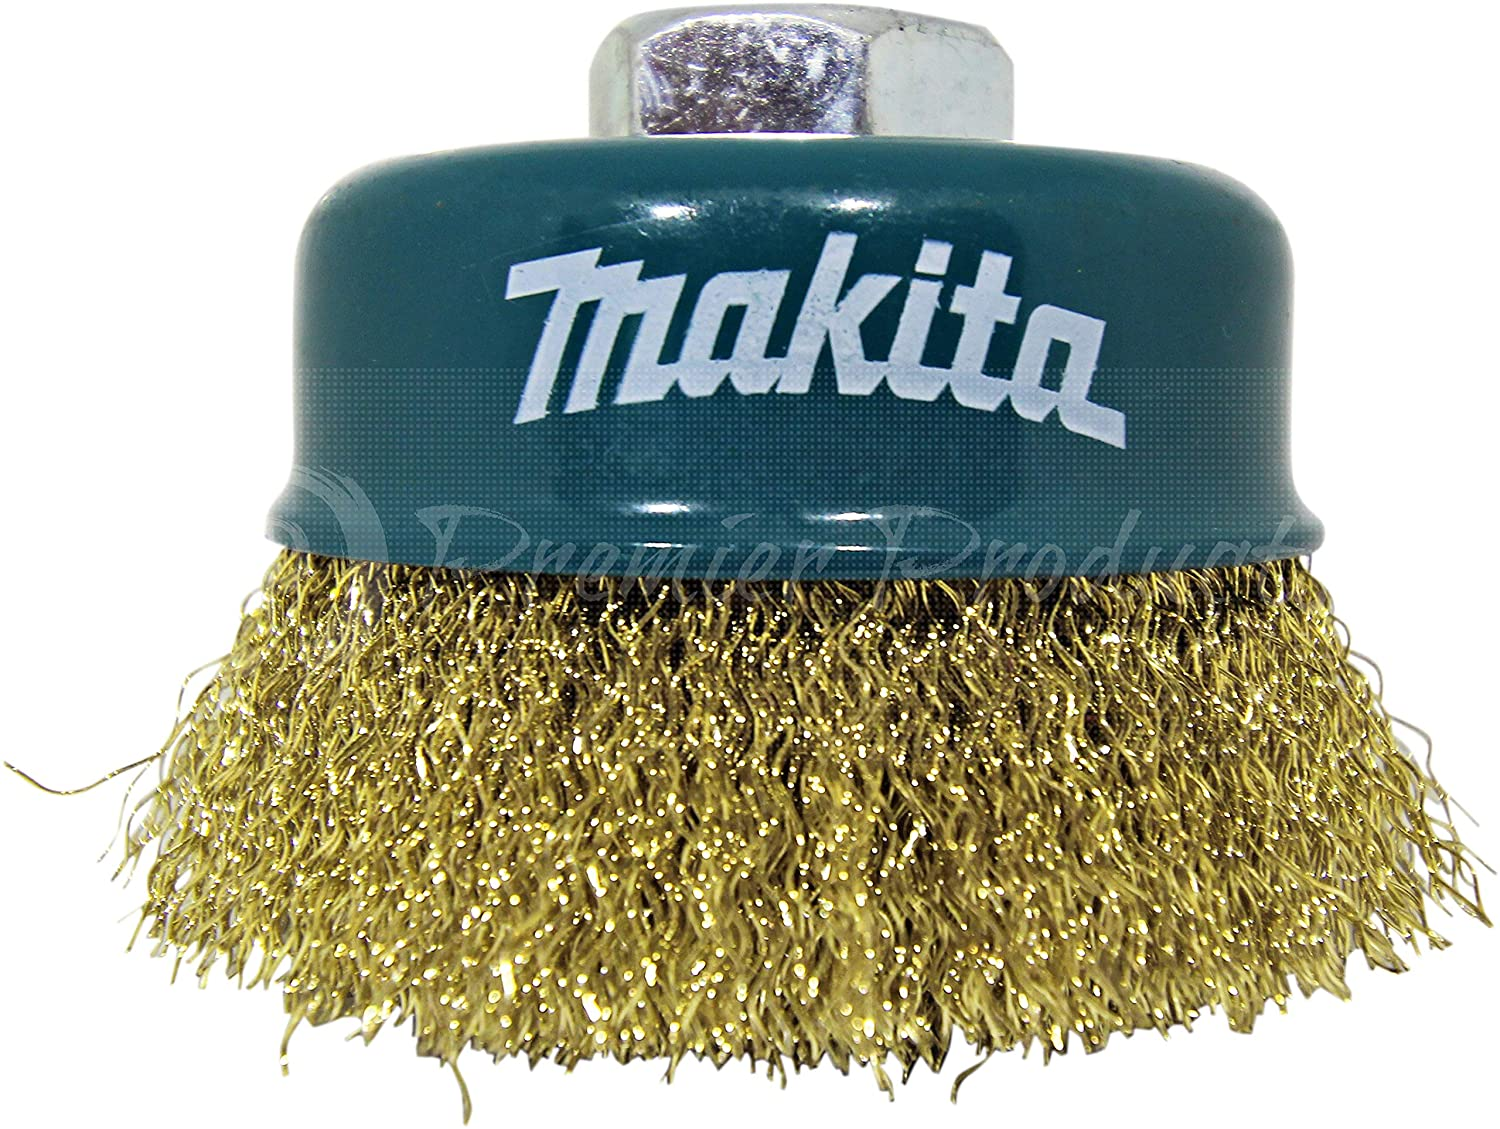 Makita 1 Piece 3 Inch Brass Crimped Wire Cup Brush For Grinders 5//8-Inch Arbor 11 UNC Spark-Free Conditioning For Metal